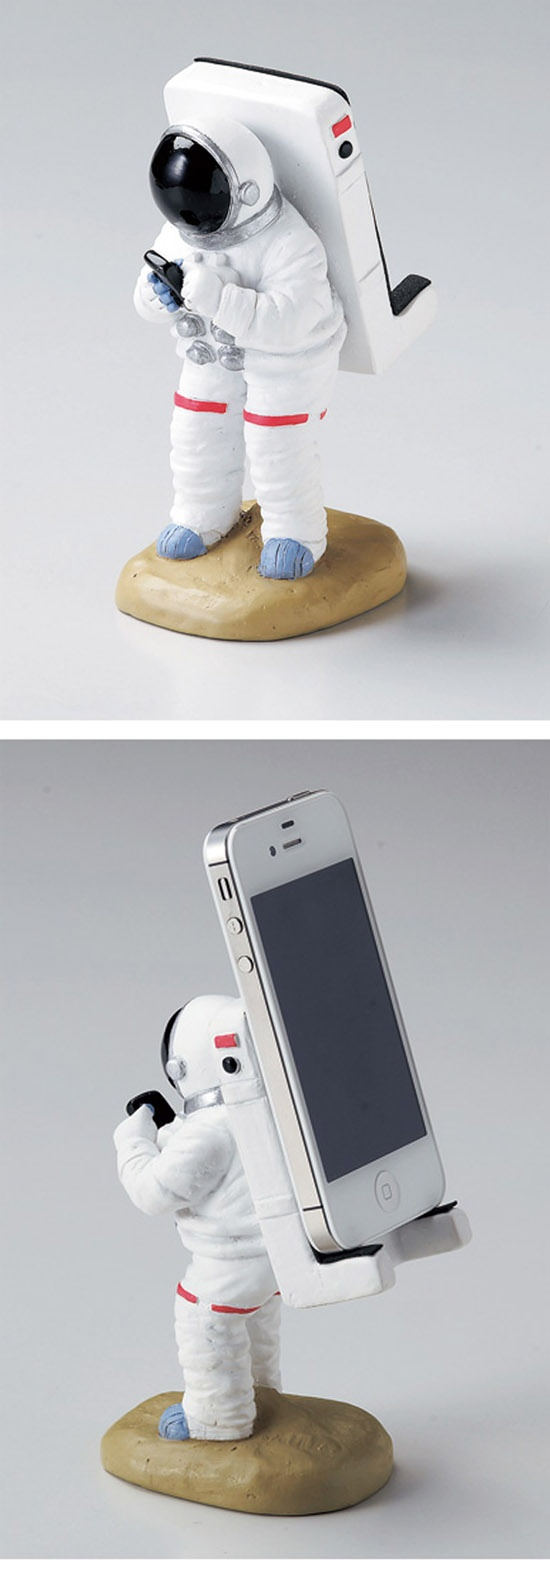 SMART PHONE STAND or REAL LIFE DESCRIPTION?